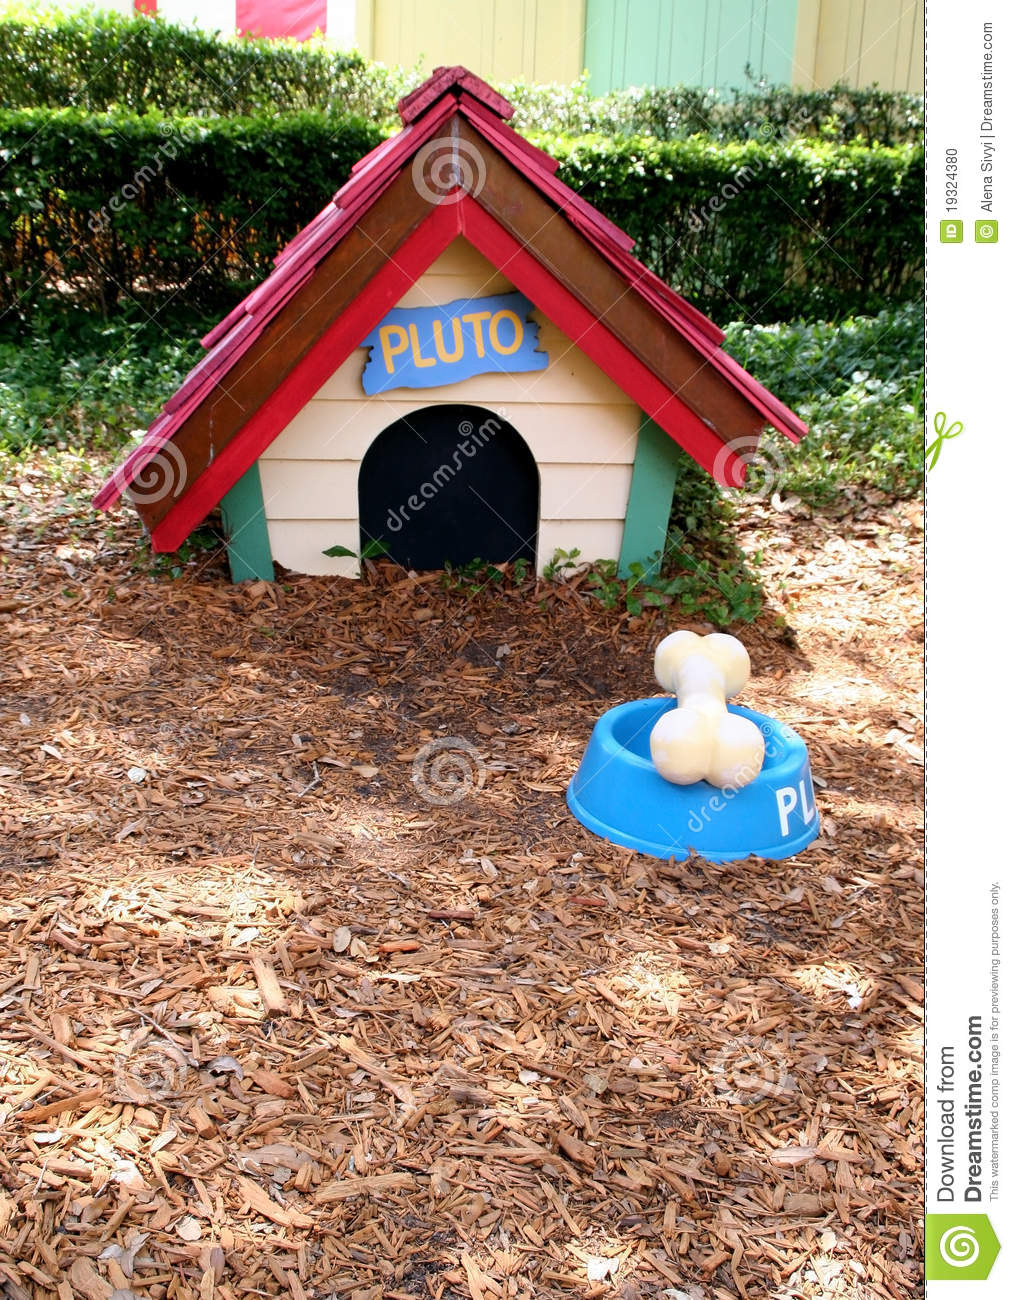 Pluto S Dog House Editorial Image Image Of Theme Friend 19324380